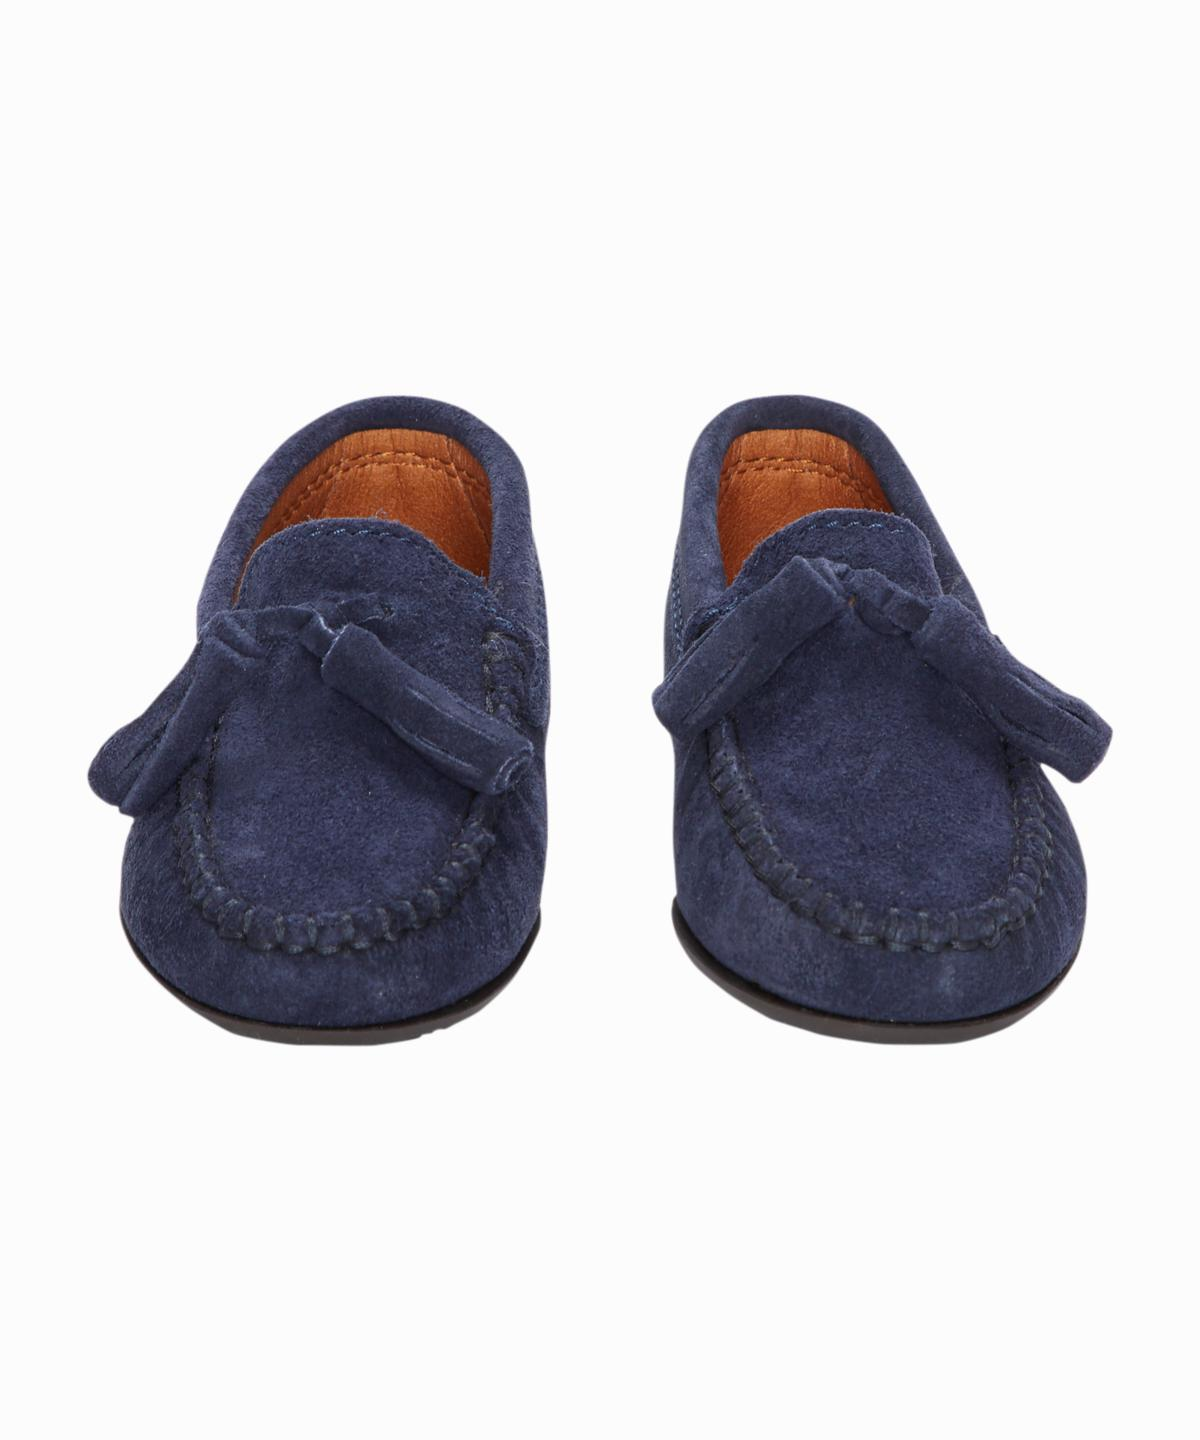 Navy Tassel Suede Loafer